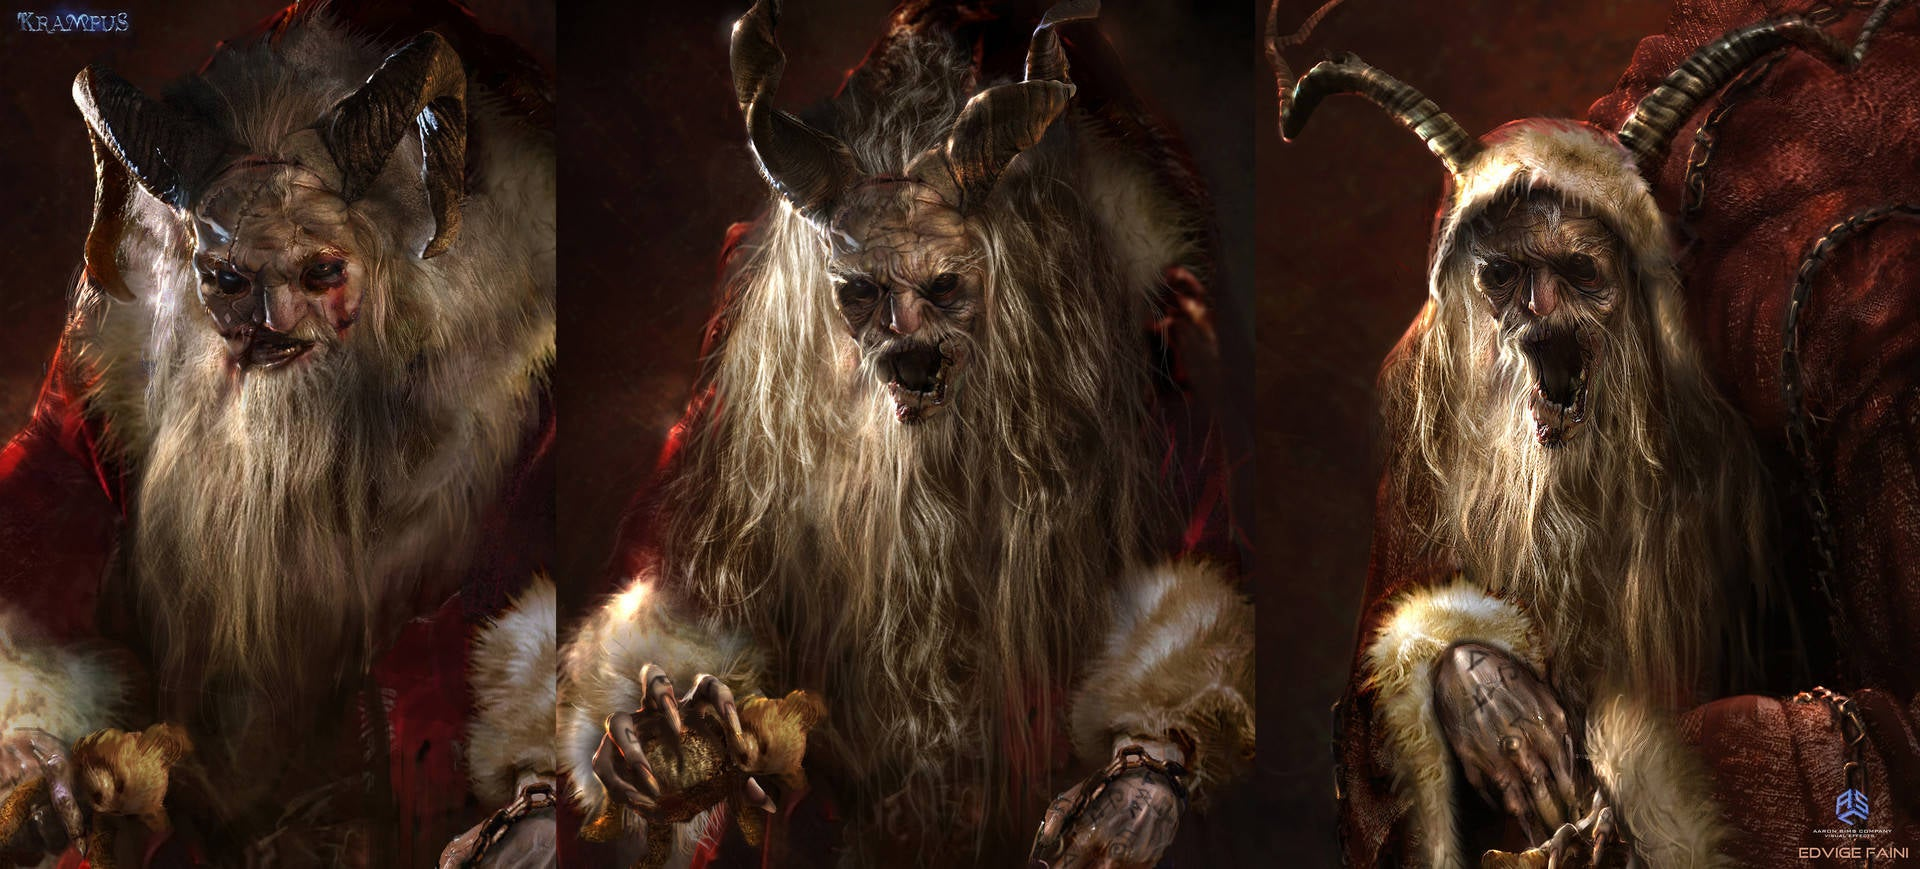 edvige-faini-evolution-of-the-krampus-character-web